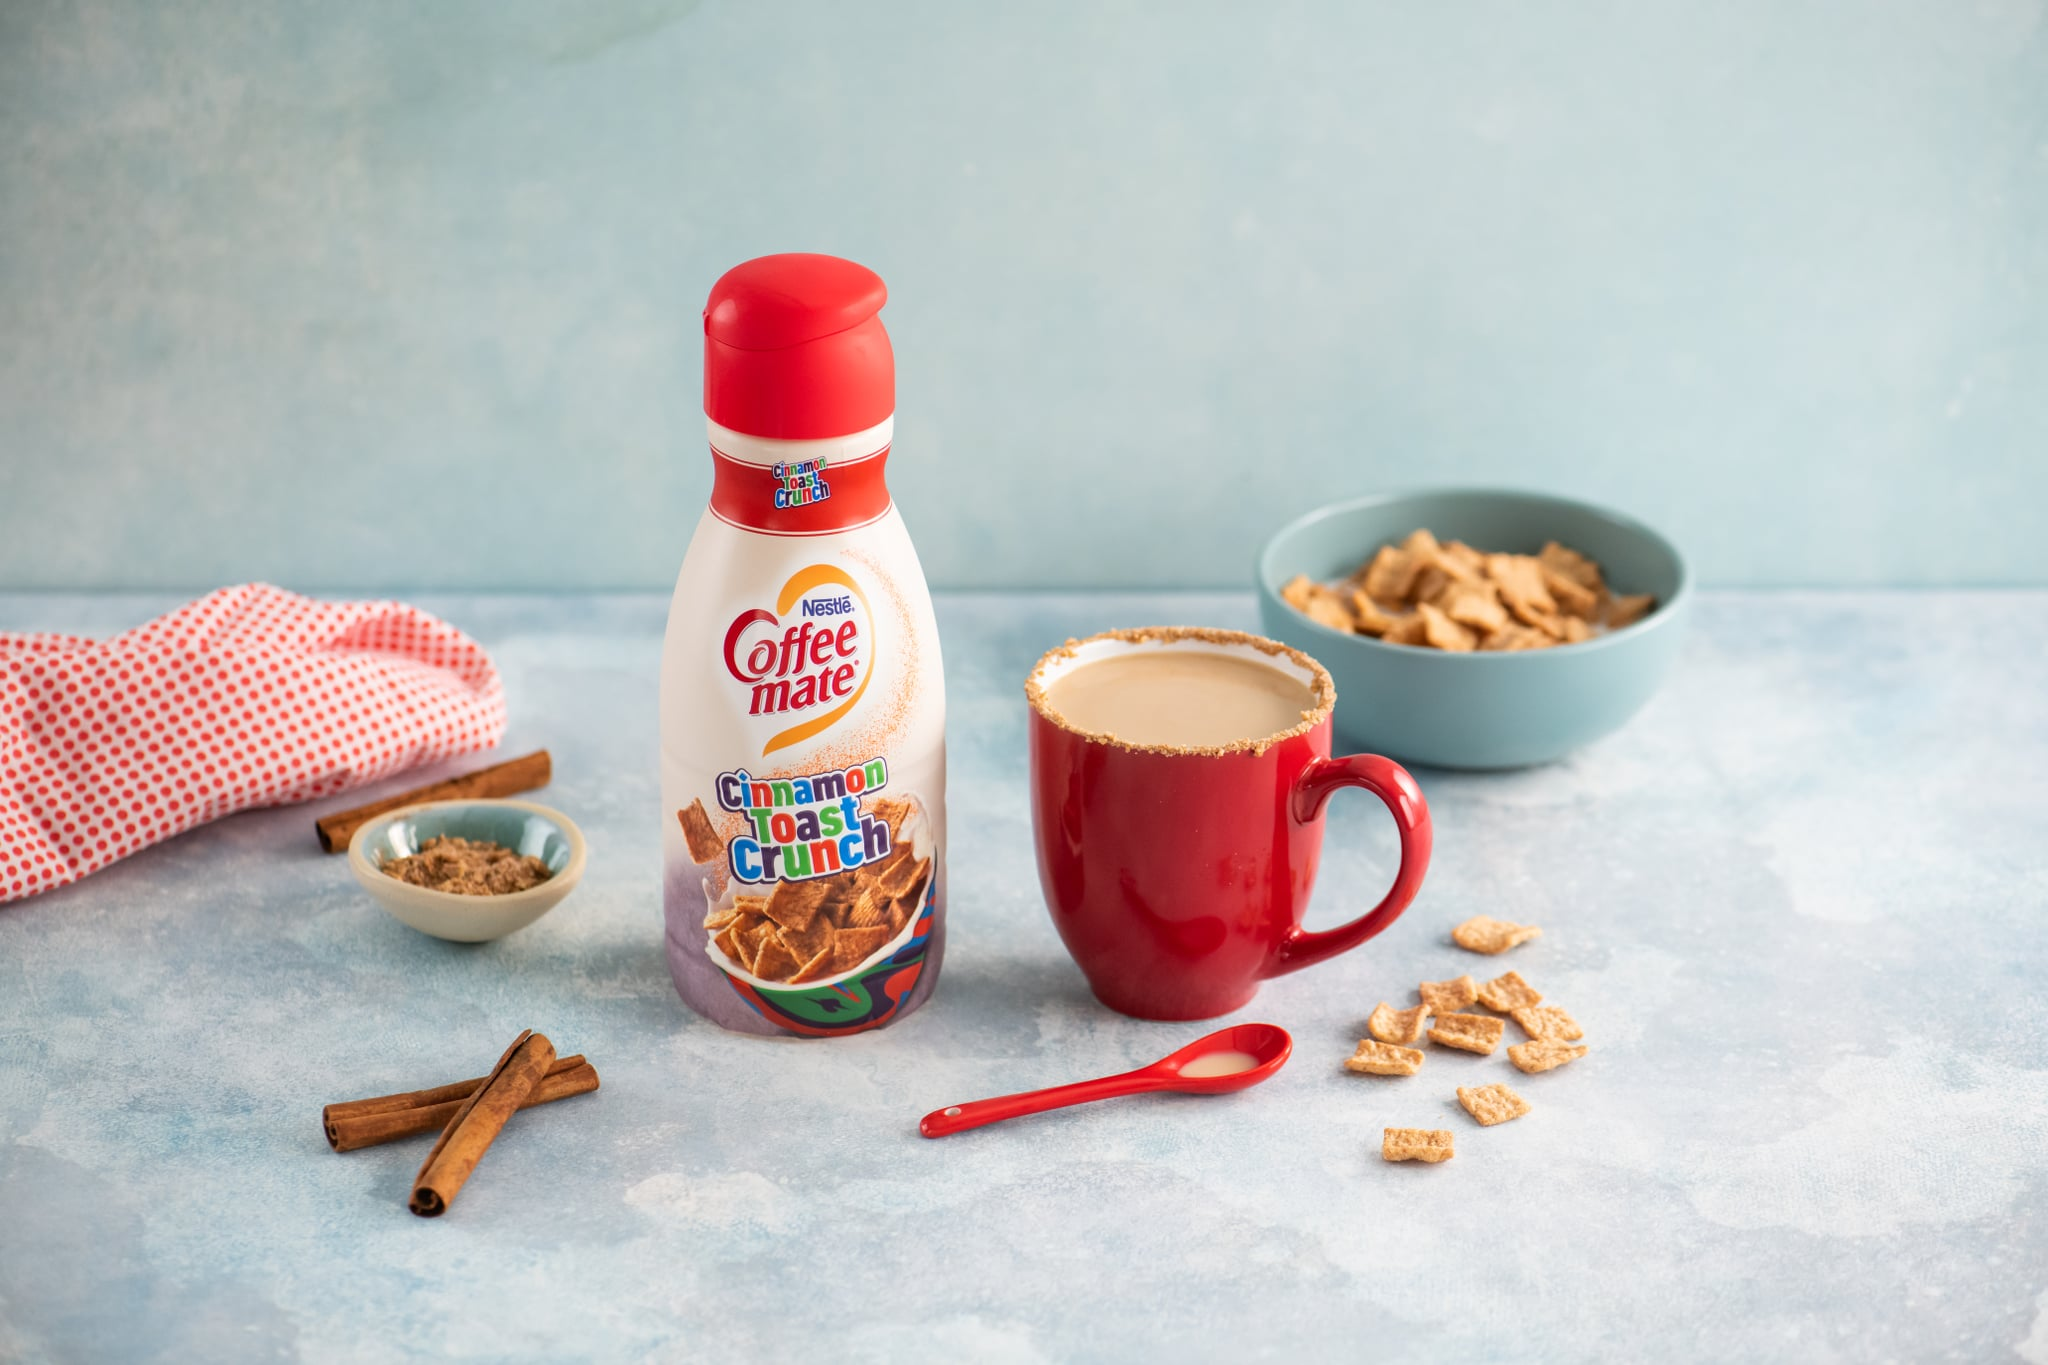 Coffee-Mate Is Launching Cinnamon Toast Crunch and Funfetti Creamers in the New Year!